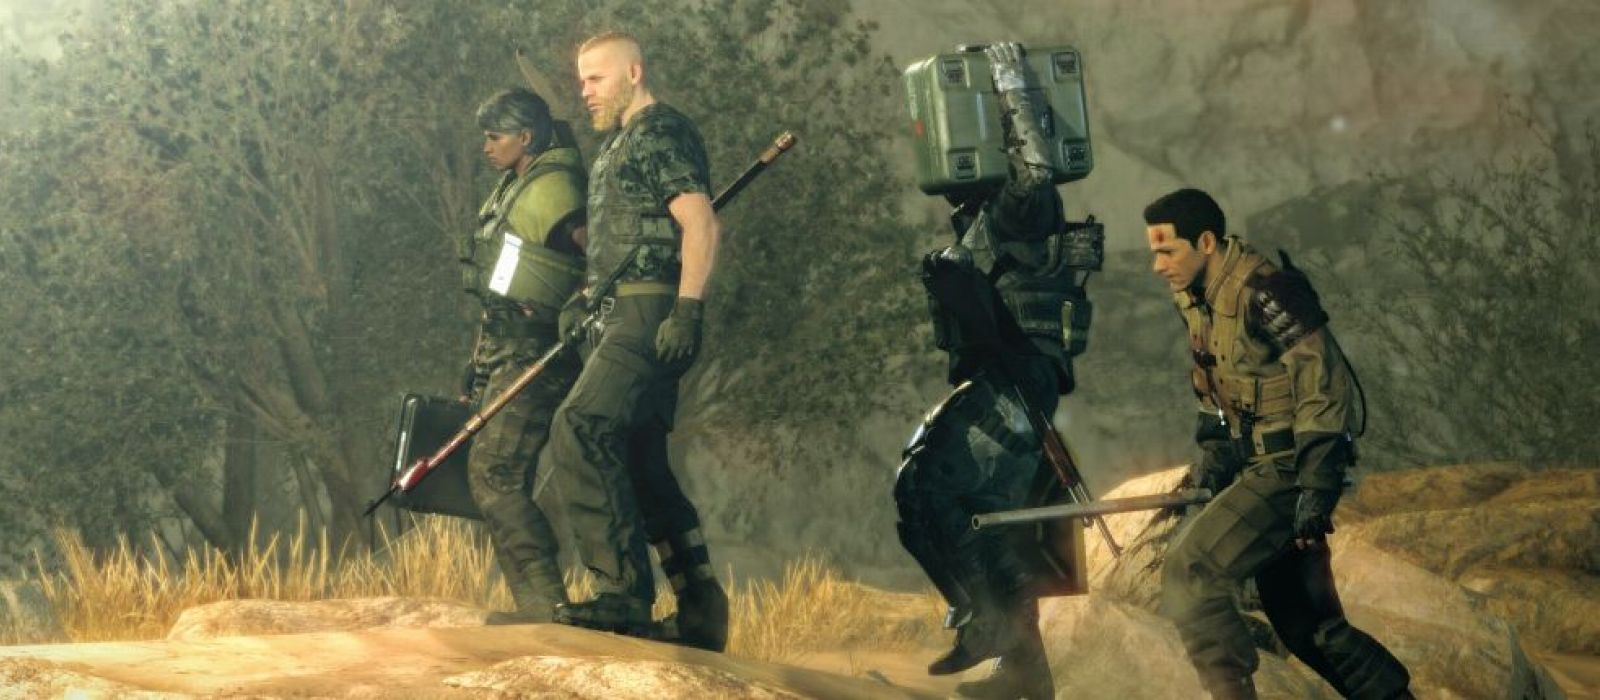 Превью Metal Gear Survive — впечатления от бета-теста